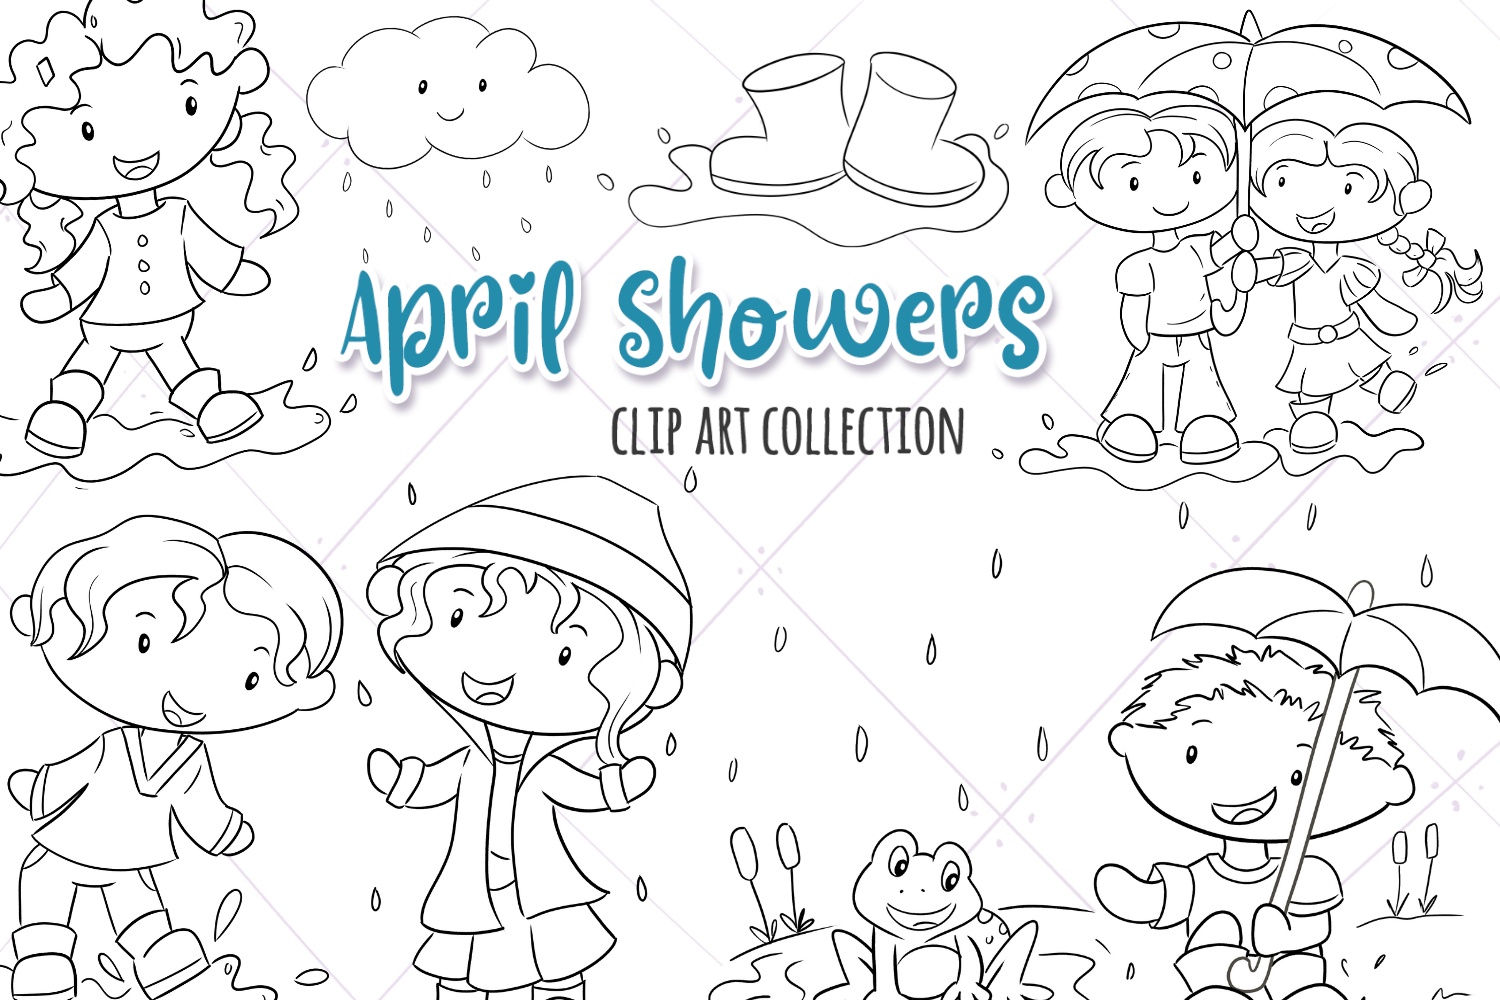 Download Free April Showers Black And White Graphic By Keepinitkawaiidesign for Cricut Explore, Silhouette and other cutting machines.